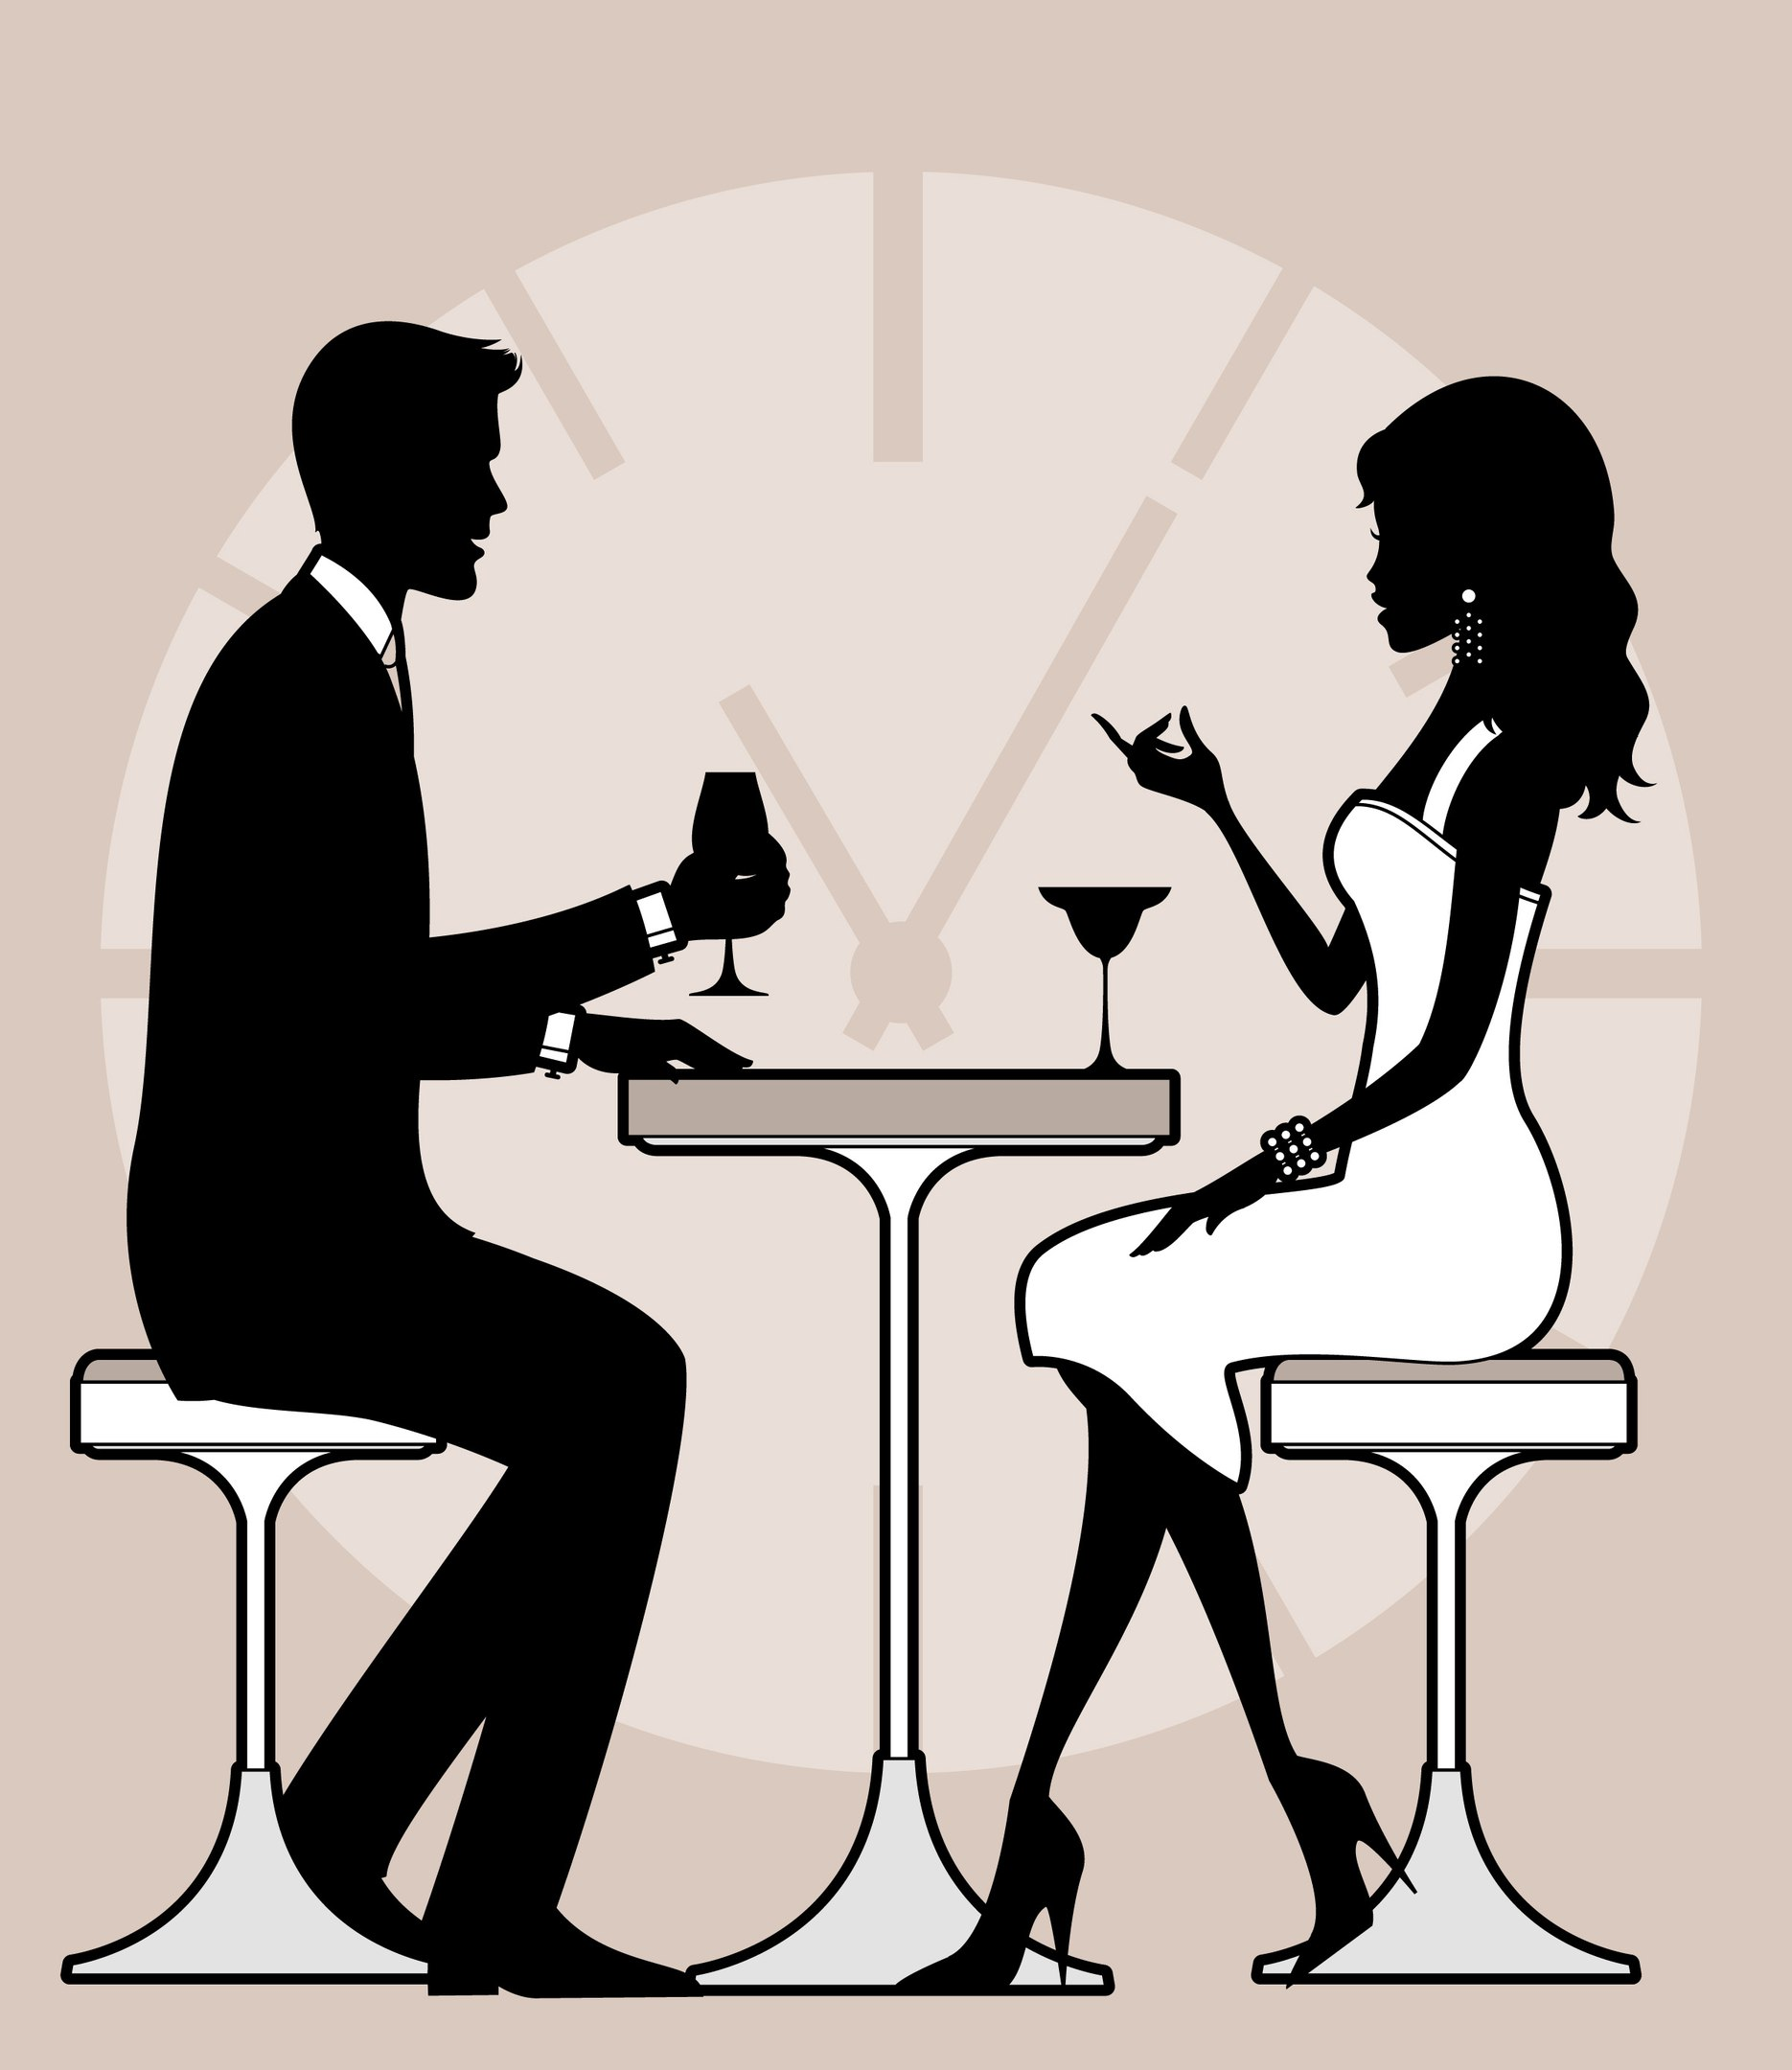 Speed dating tips reddit